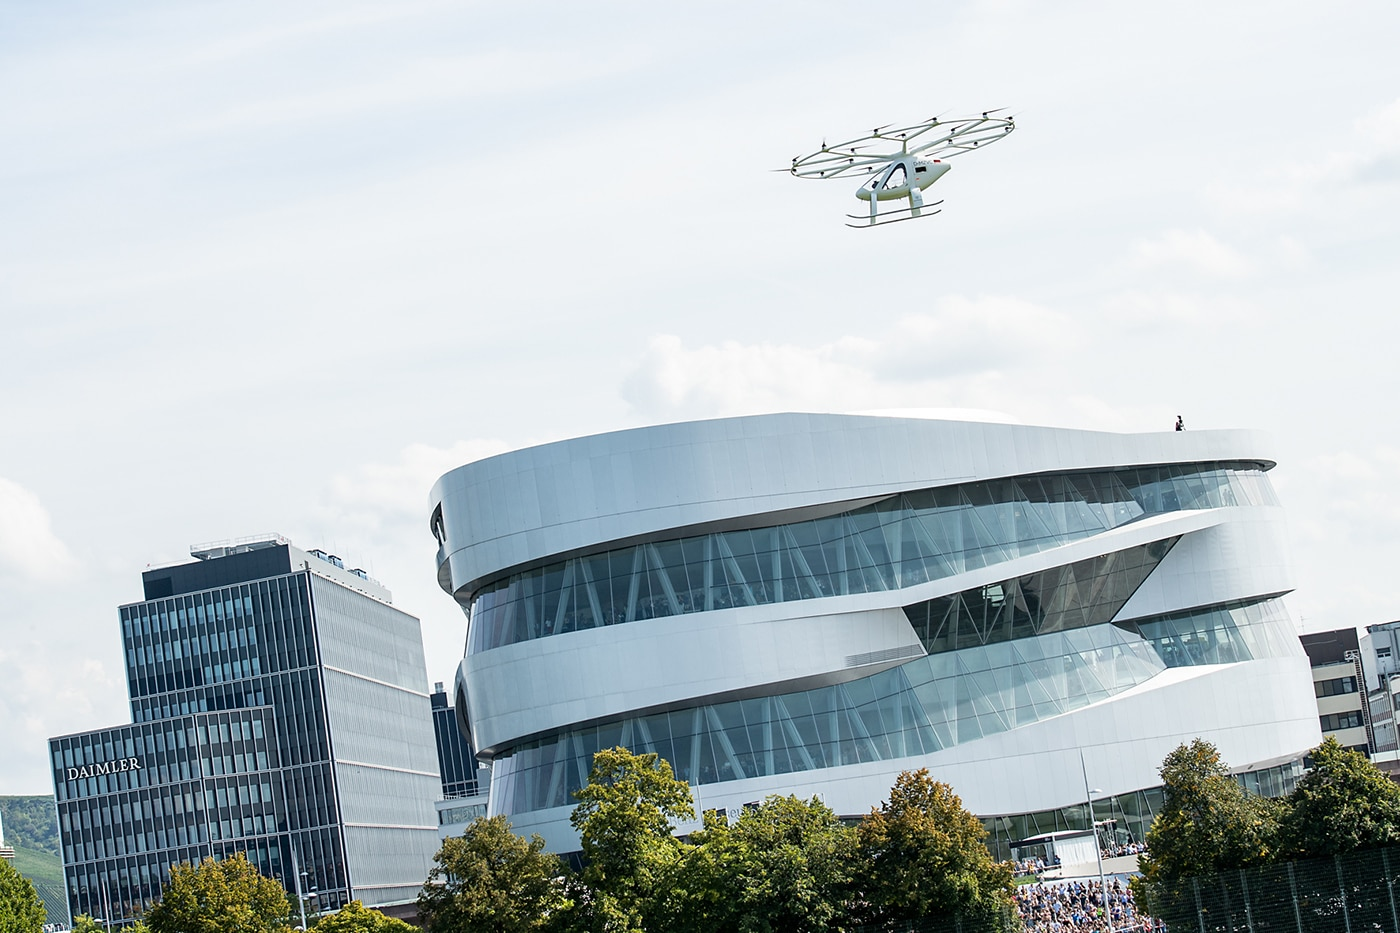 Volocopter successfully made its first European urban flight